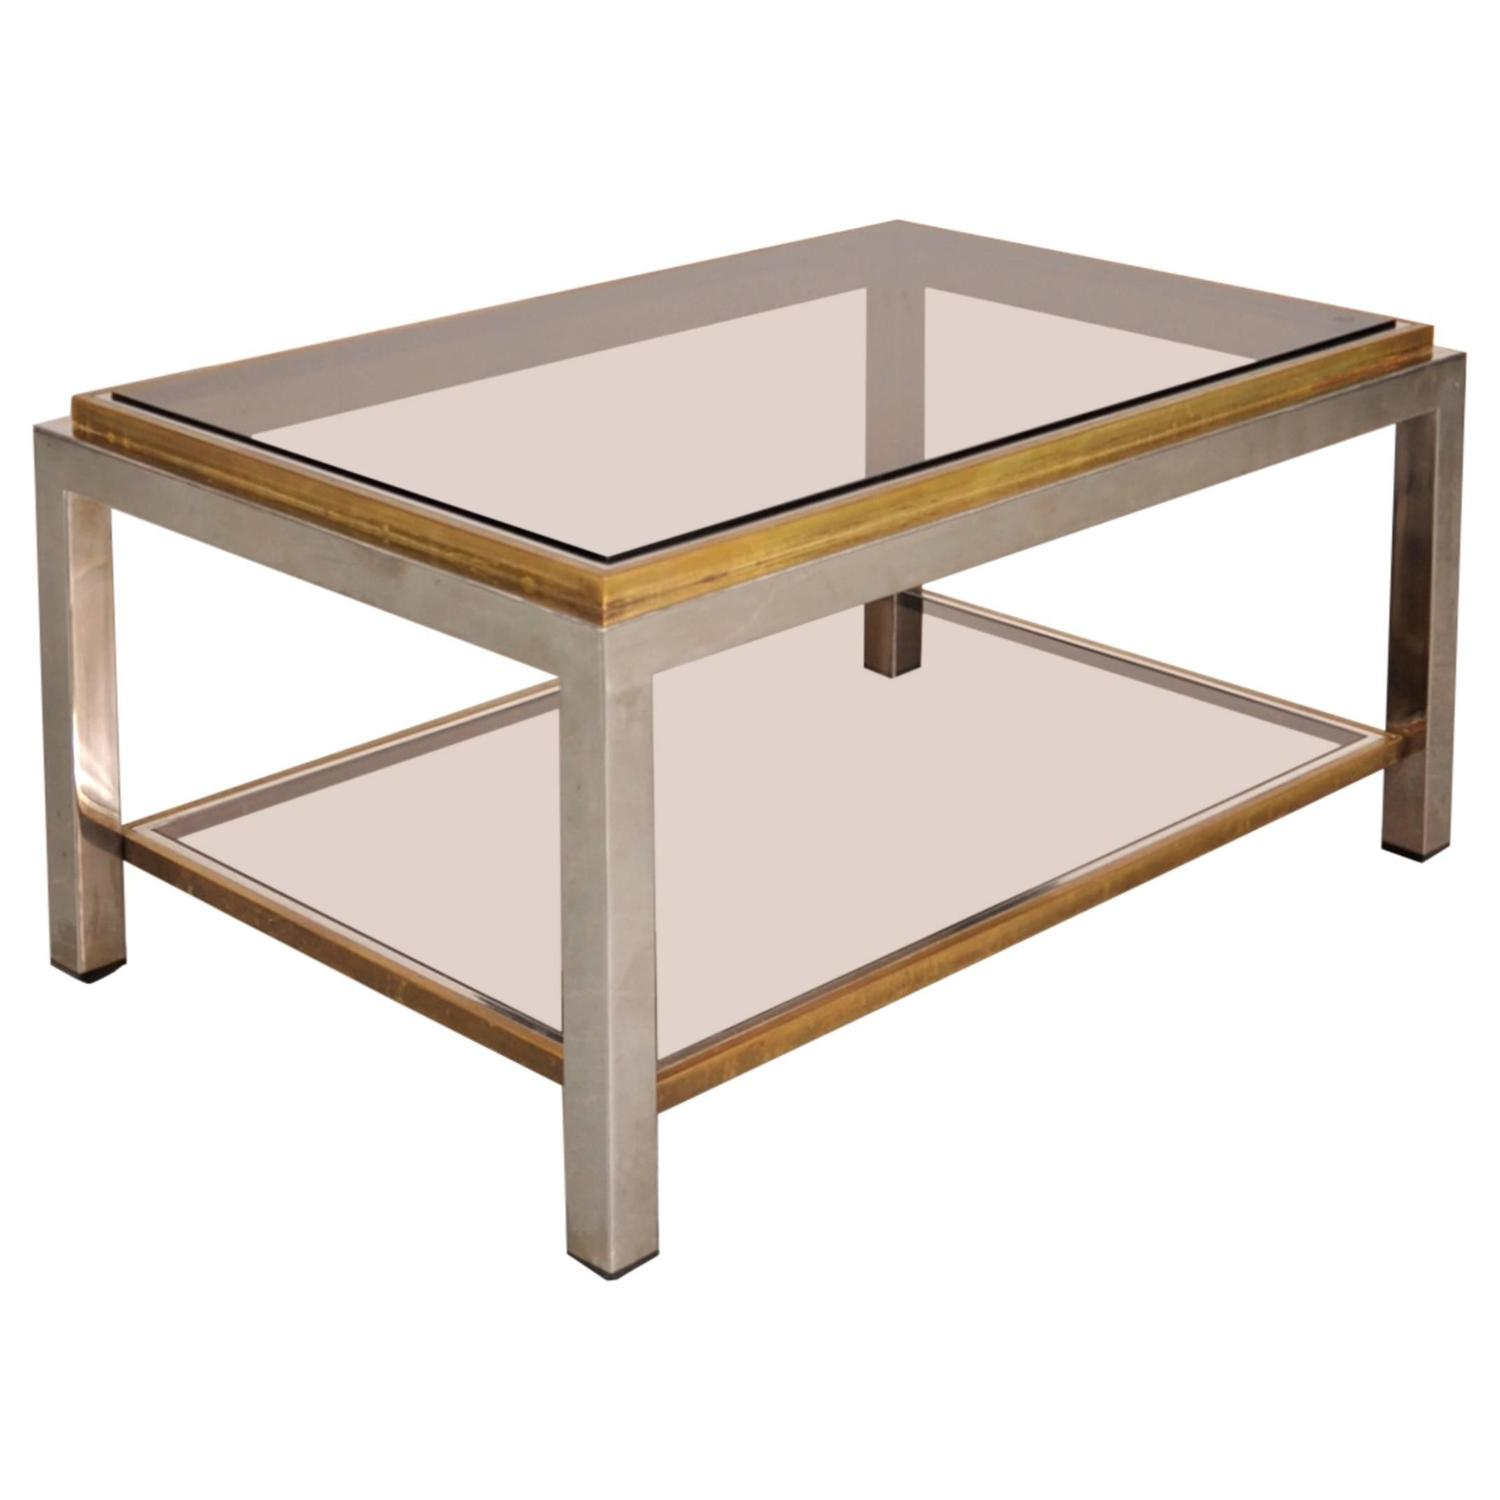 Flaminia coffee table by willy rizzo italy circa 1970 for Table willy rizzo